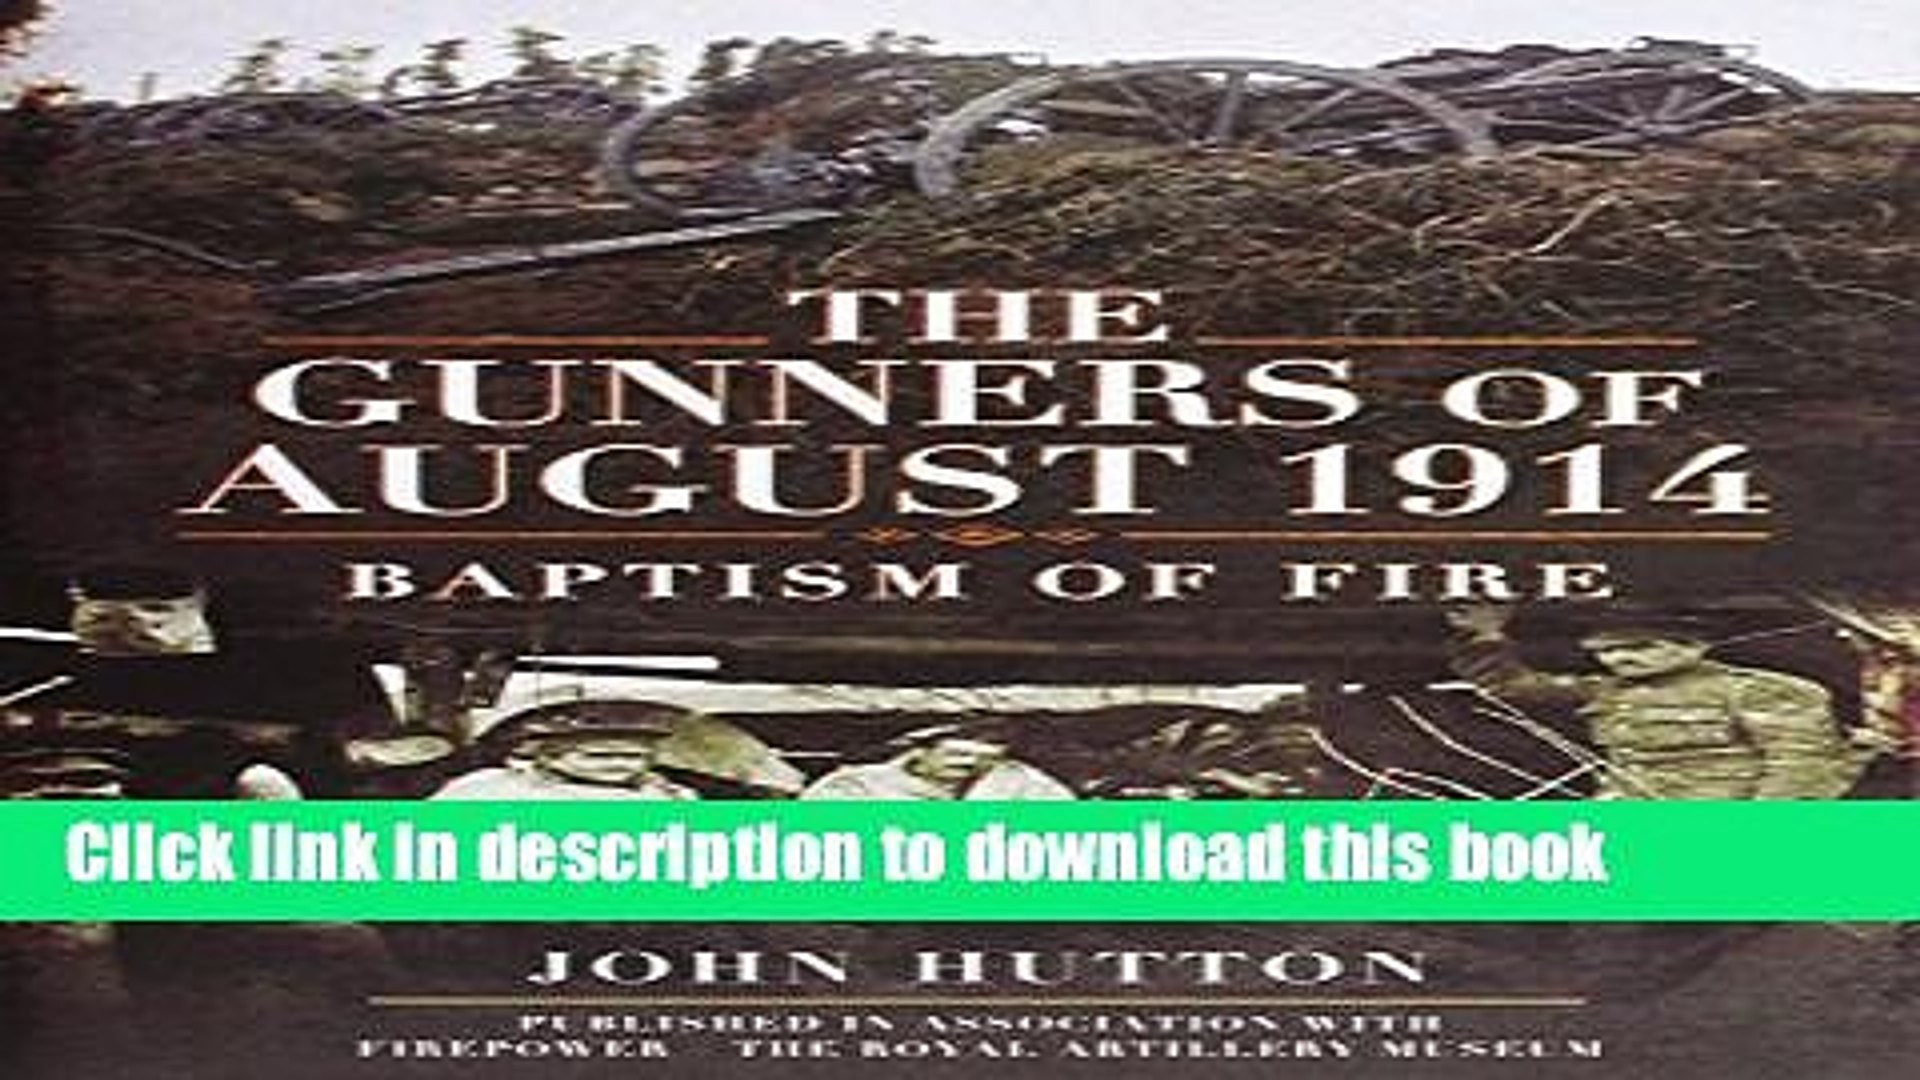 Read The Gunners of August 1914: Baptism of Fire  Ebook Free